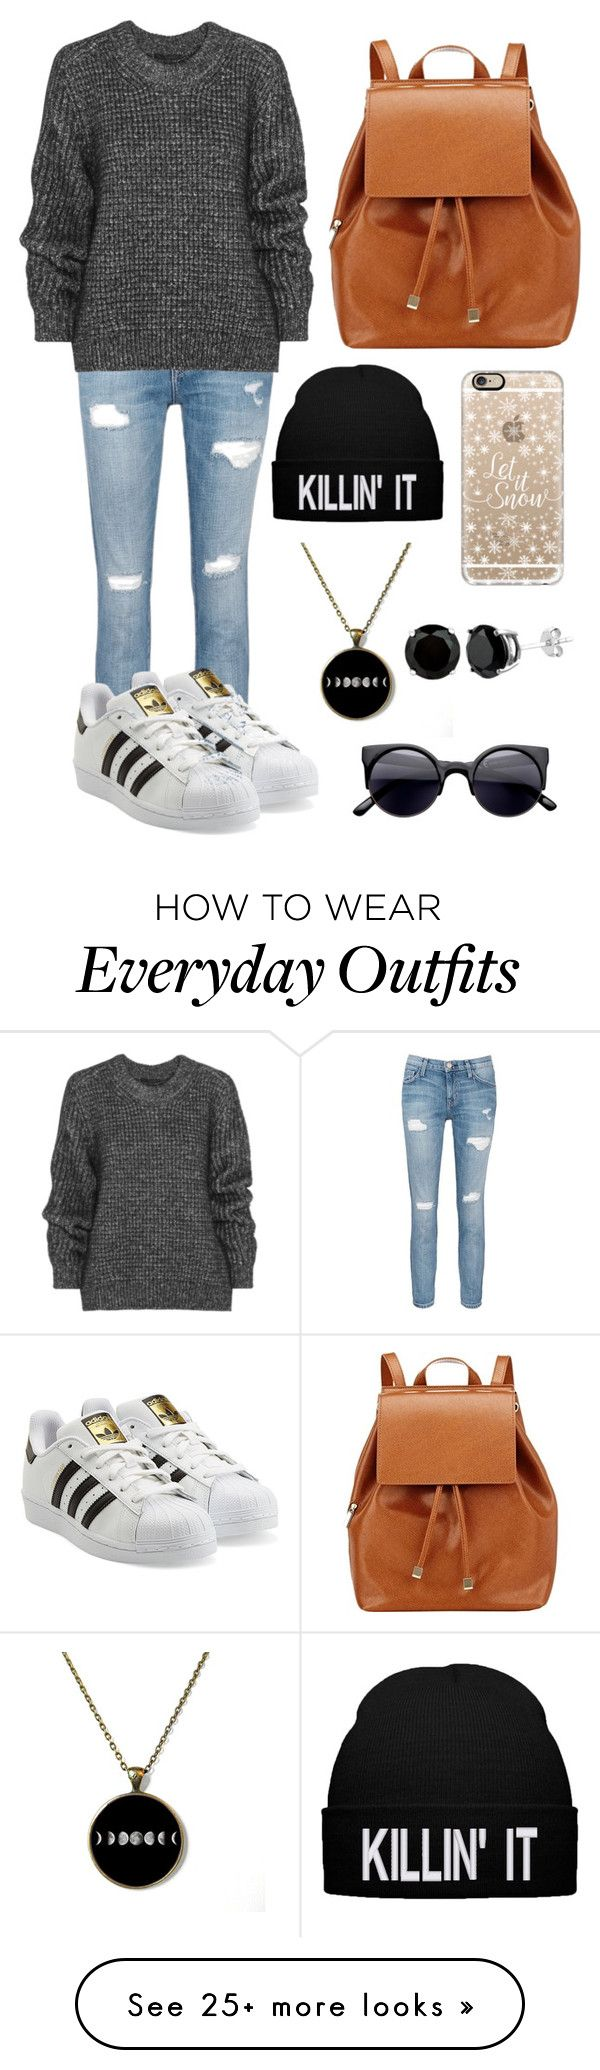 """Everyday outfit."" by annasoutfit on Polyvore featuring Current/Elliott, Belstaff, adidas Originals, Barneys New York and Casetify"